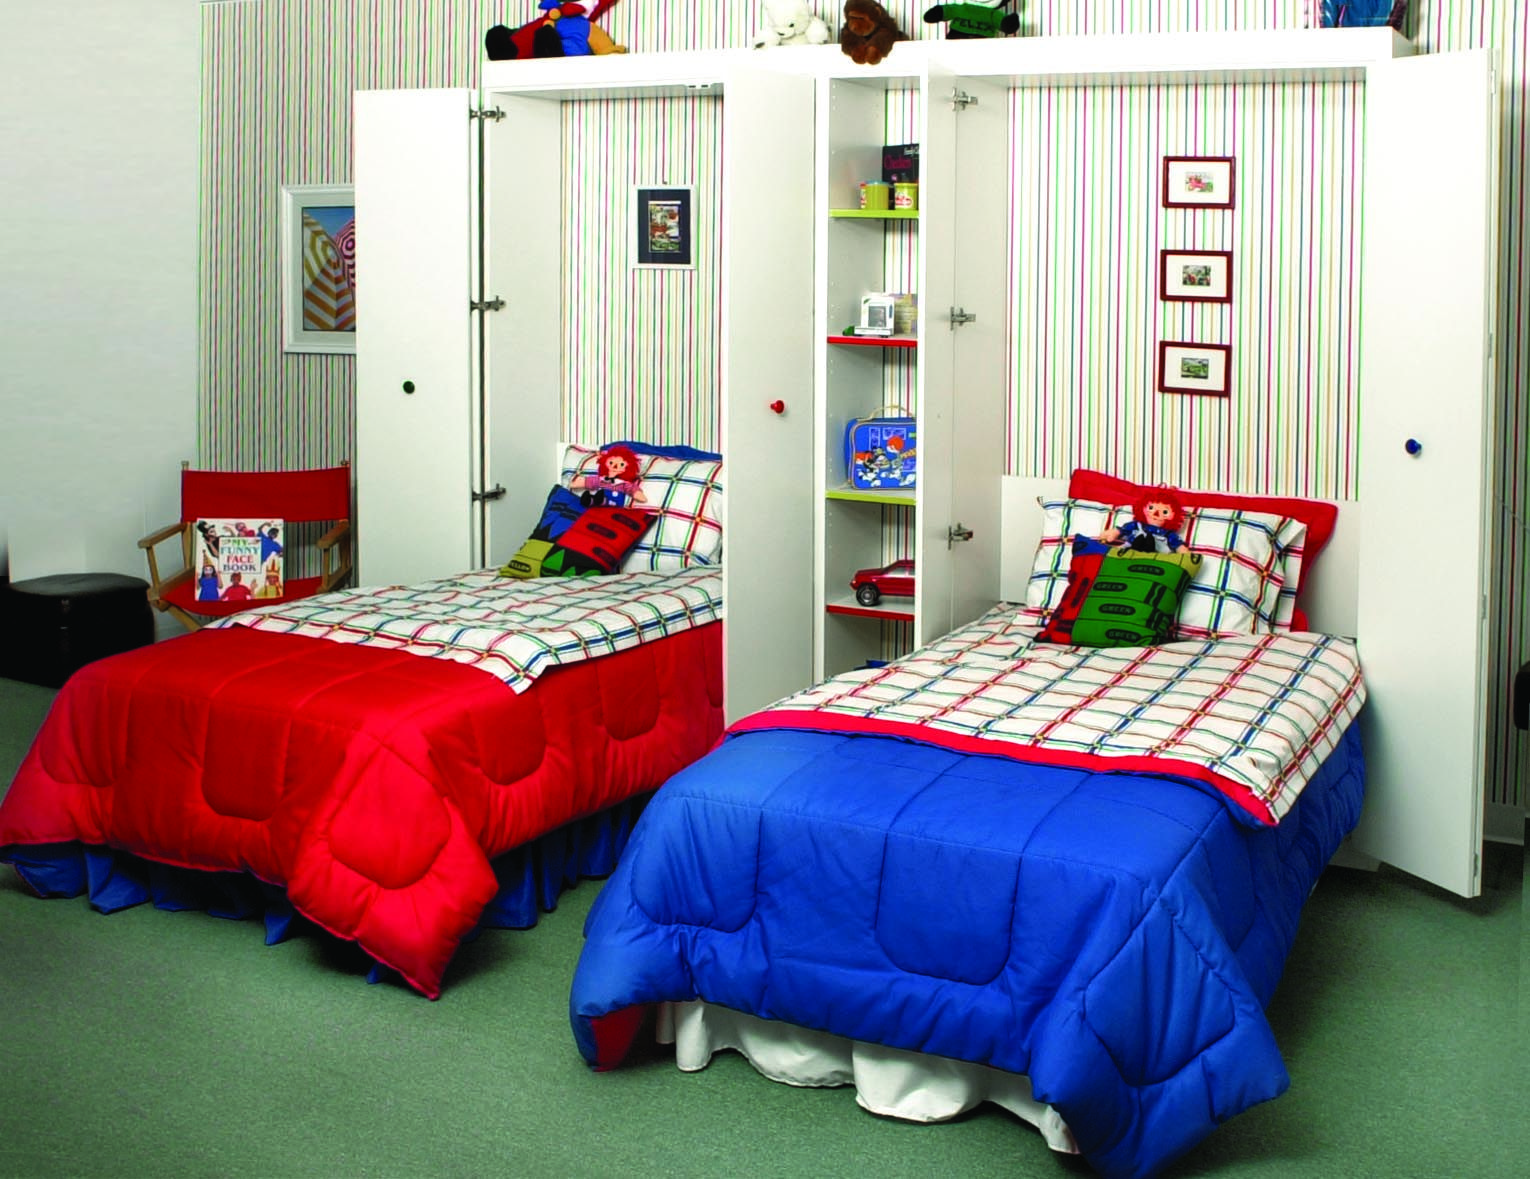 Space Saver Beds For Kids space-saving kids beds | kids bed design, bed design and murphy bed